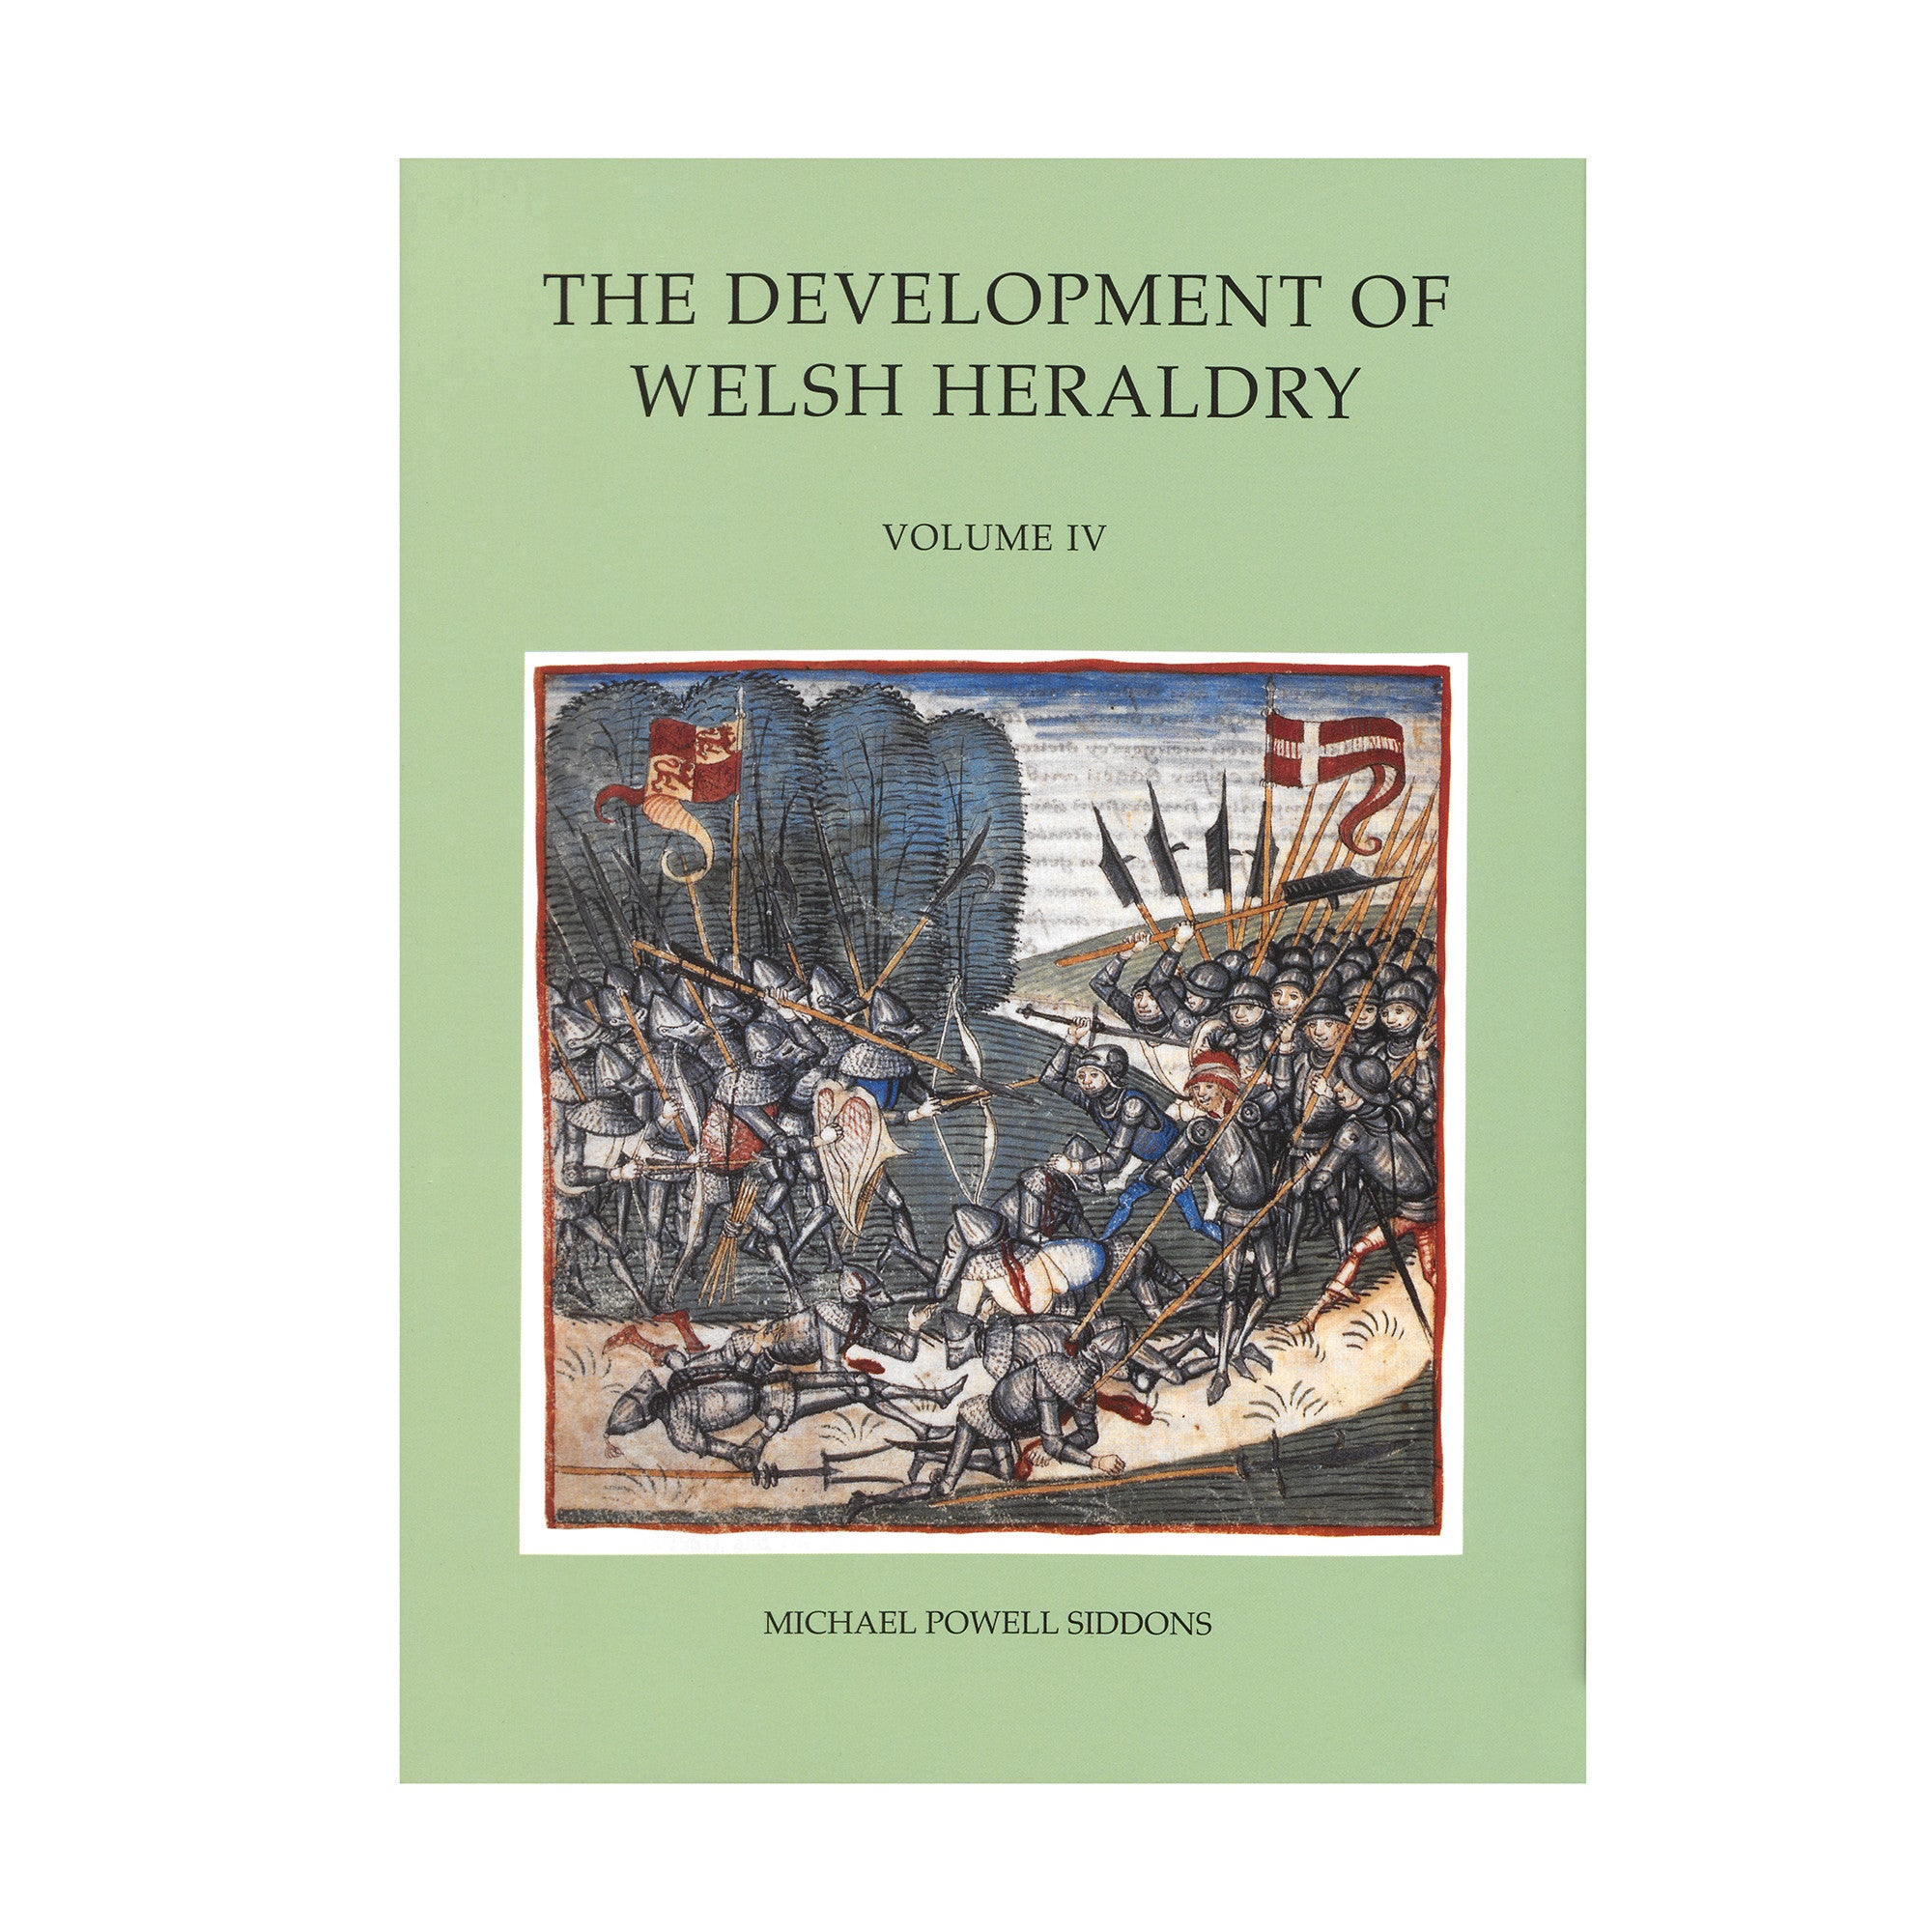 The Development of Welsh Heraldry - Volume IV